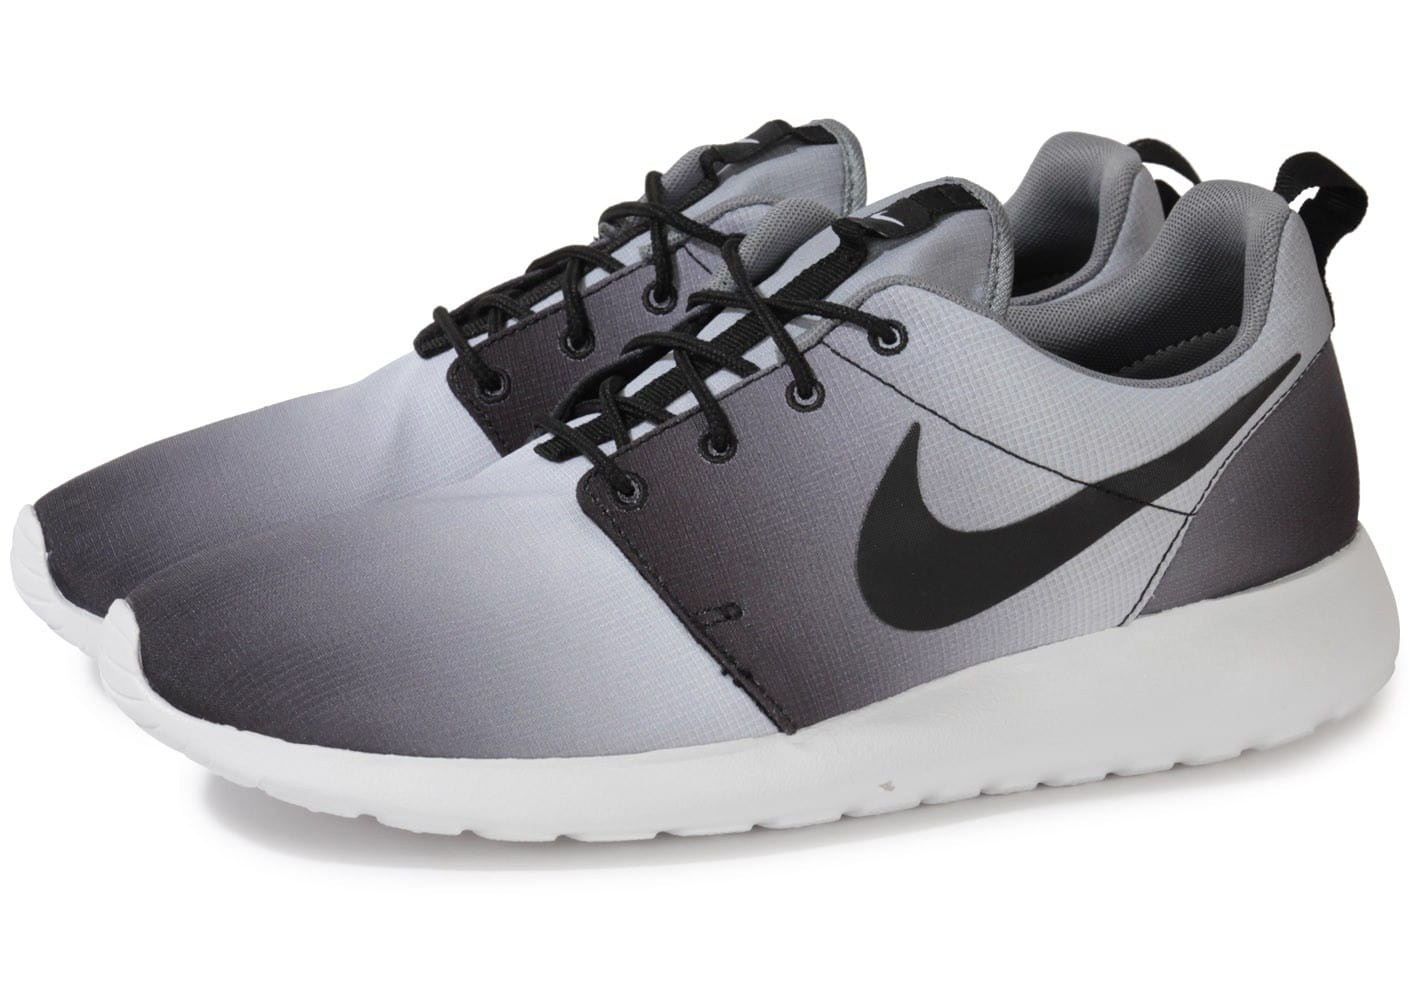 Chaussures ChaussuresFemme Nike Roshe Run Floral 2015 Flower Grise